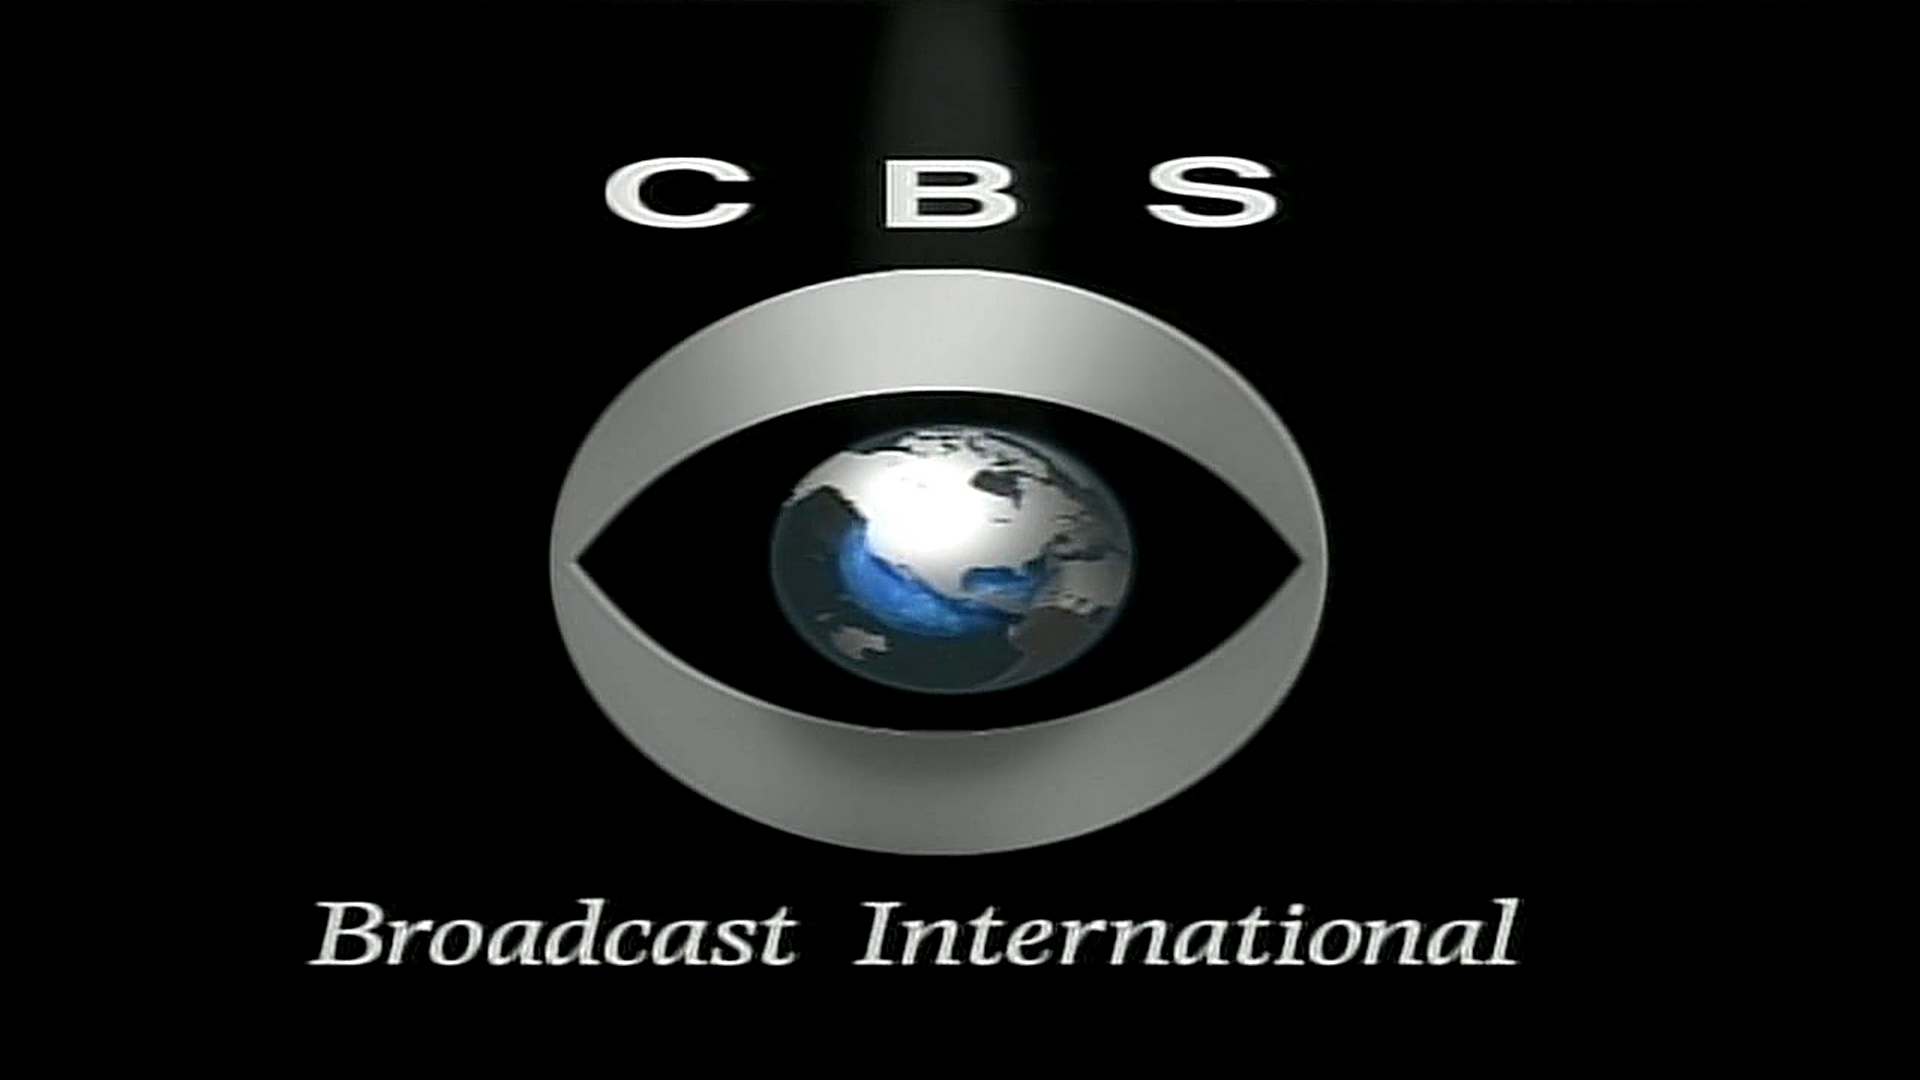 CBS Broadcast International (2004) - Stretched